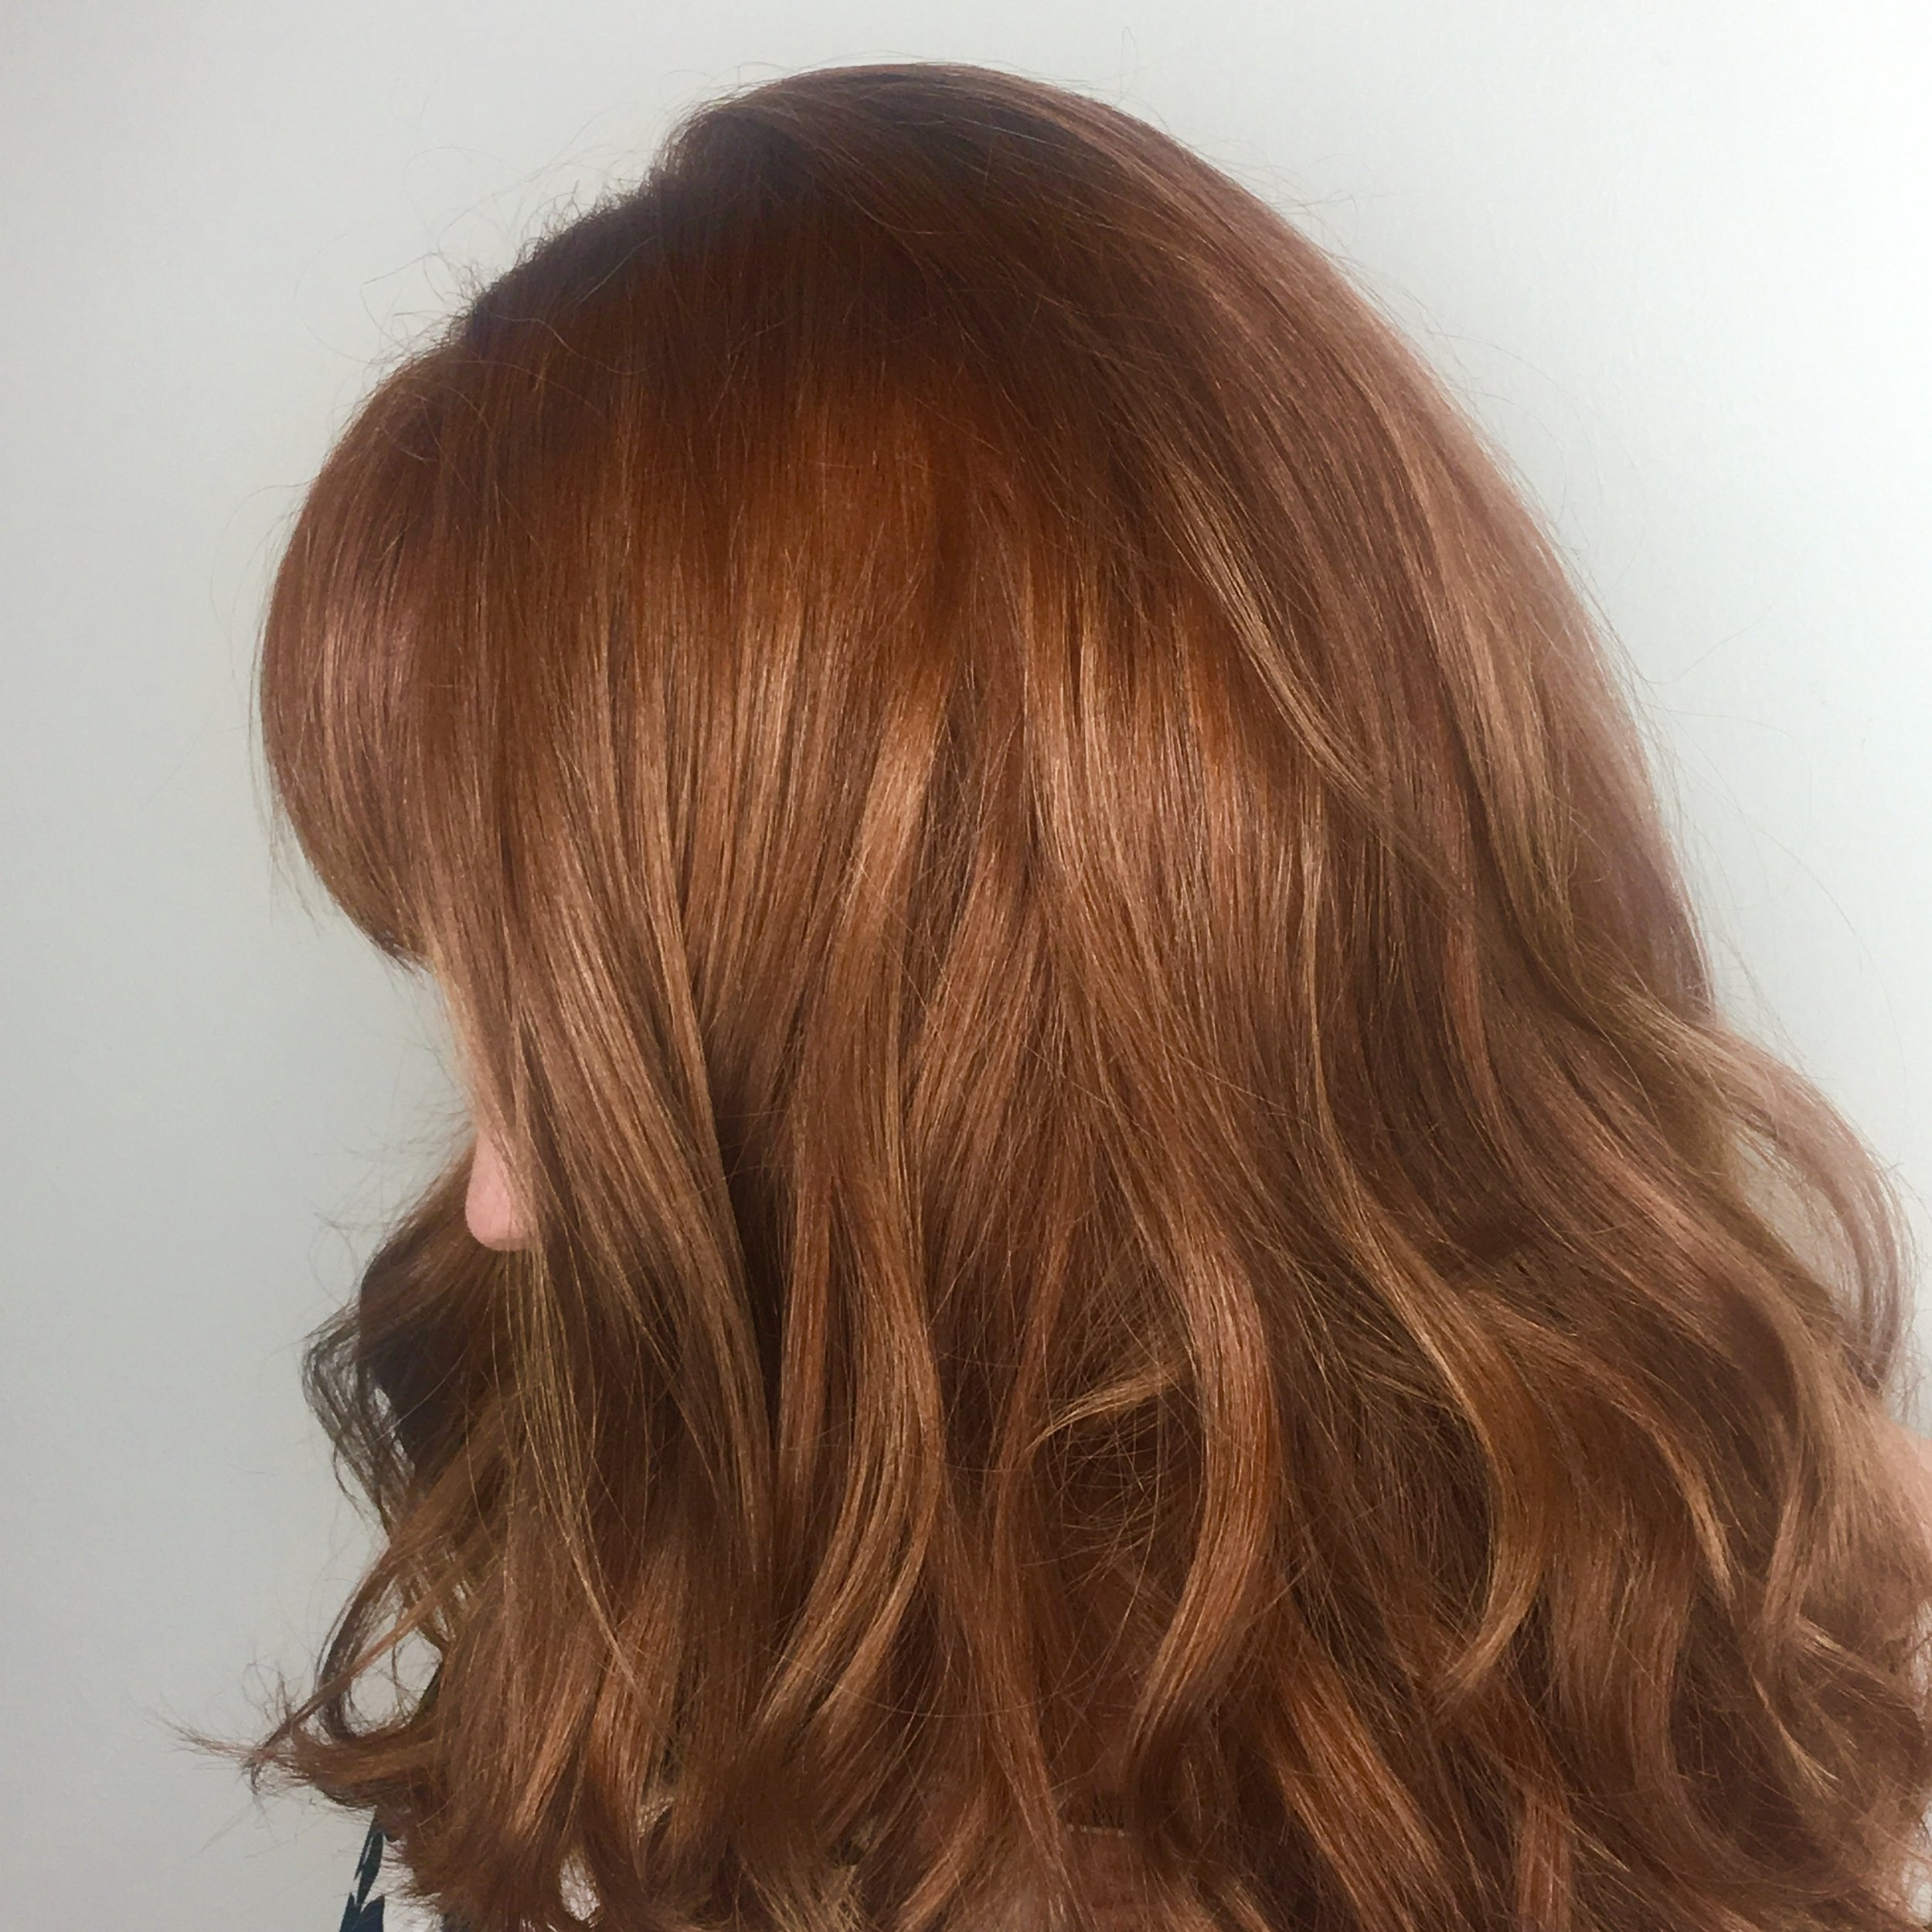 Christina Childress Highland Village Hairstylist Red Hair Color Curls